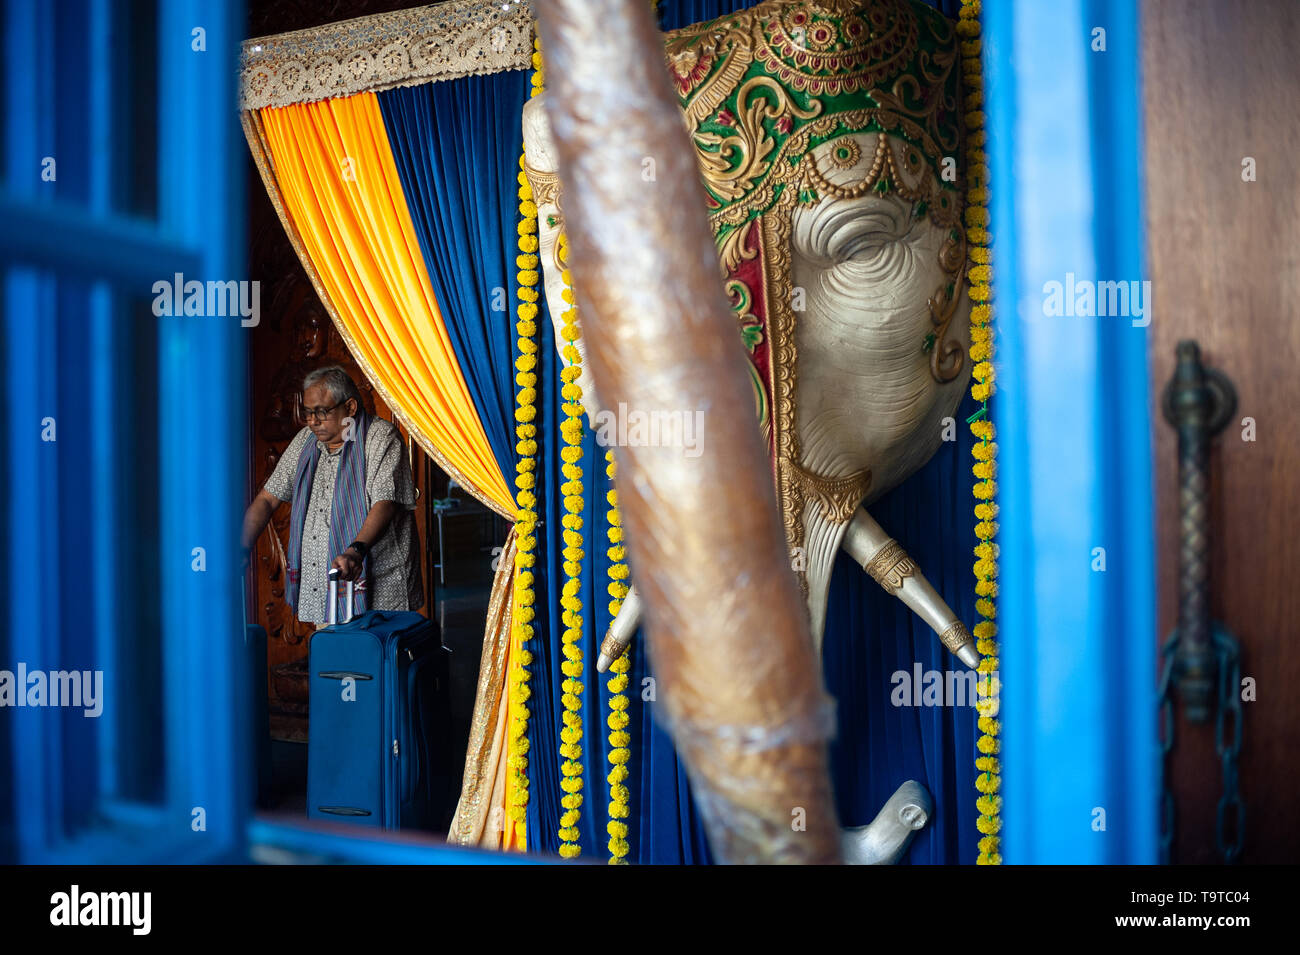 15.03.2019, Singapore, Republic of Singapore, Asia - The head of a holy elephant is used as decoration for an upcoming Indian wedding ceremony. - Stock Image